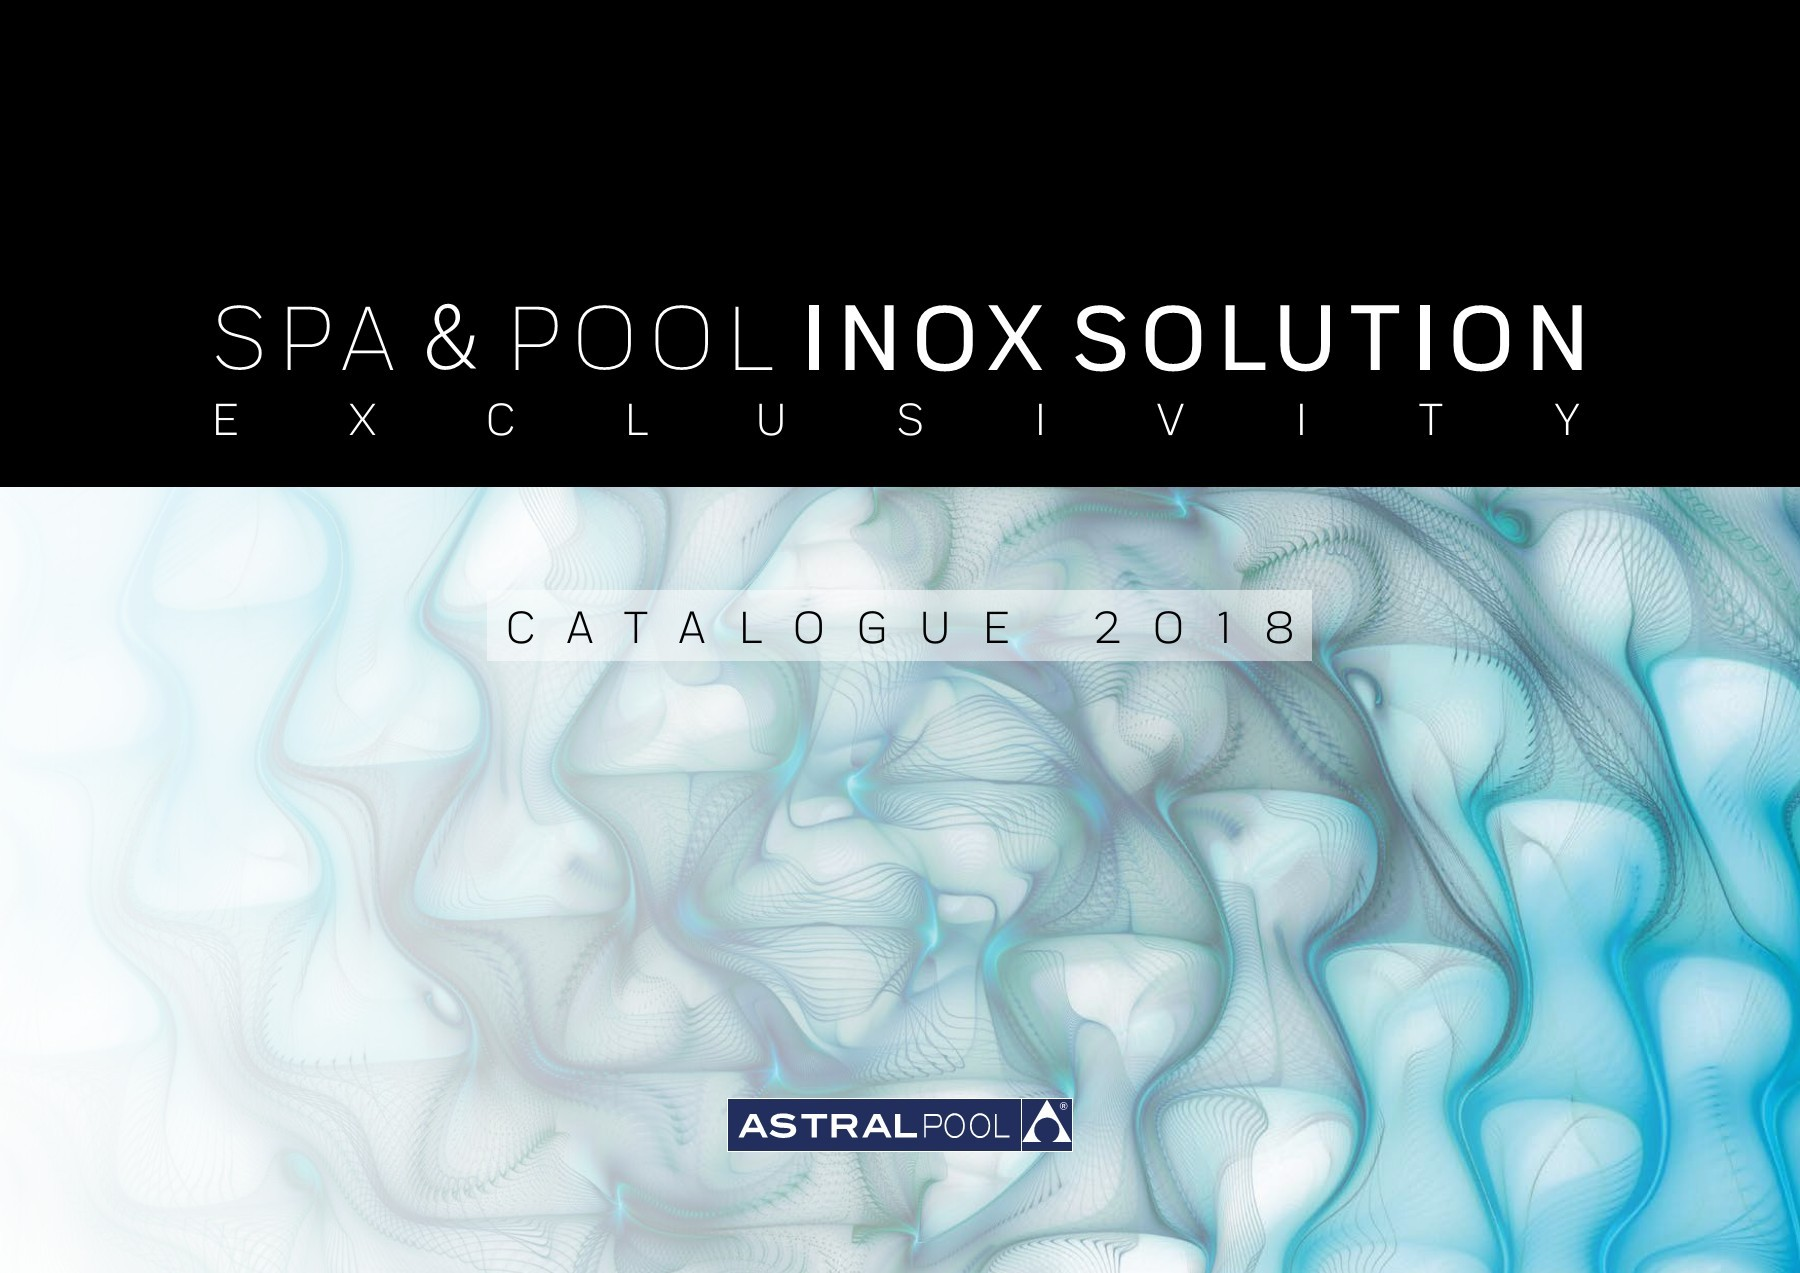 Spa Exterieur Inox Spa Pool Inox Solution Pages 1 50 Text Version Fliphtml5